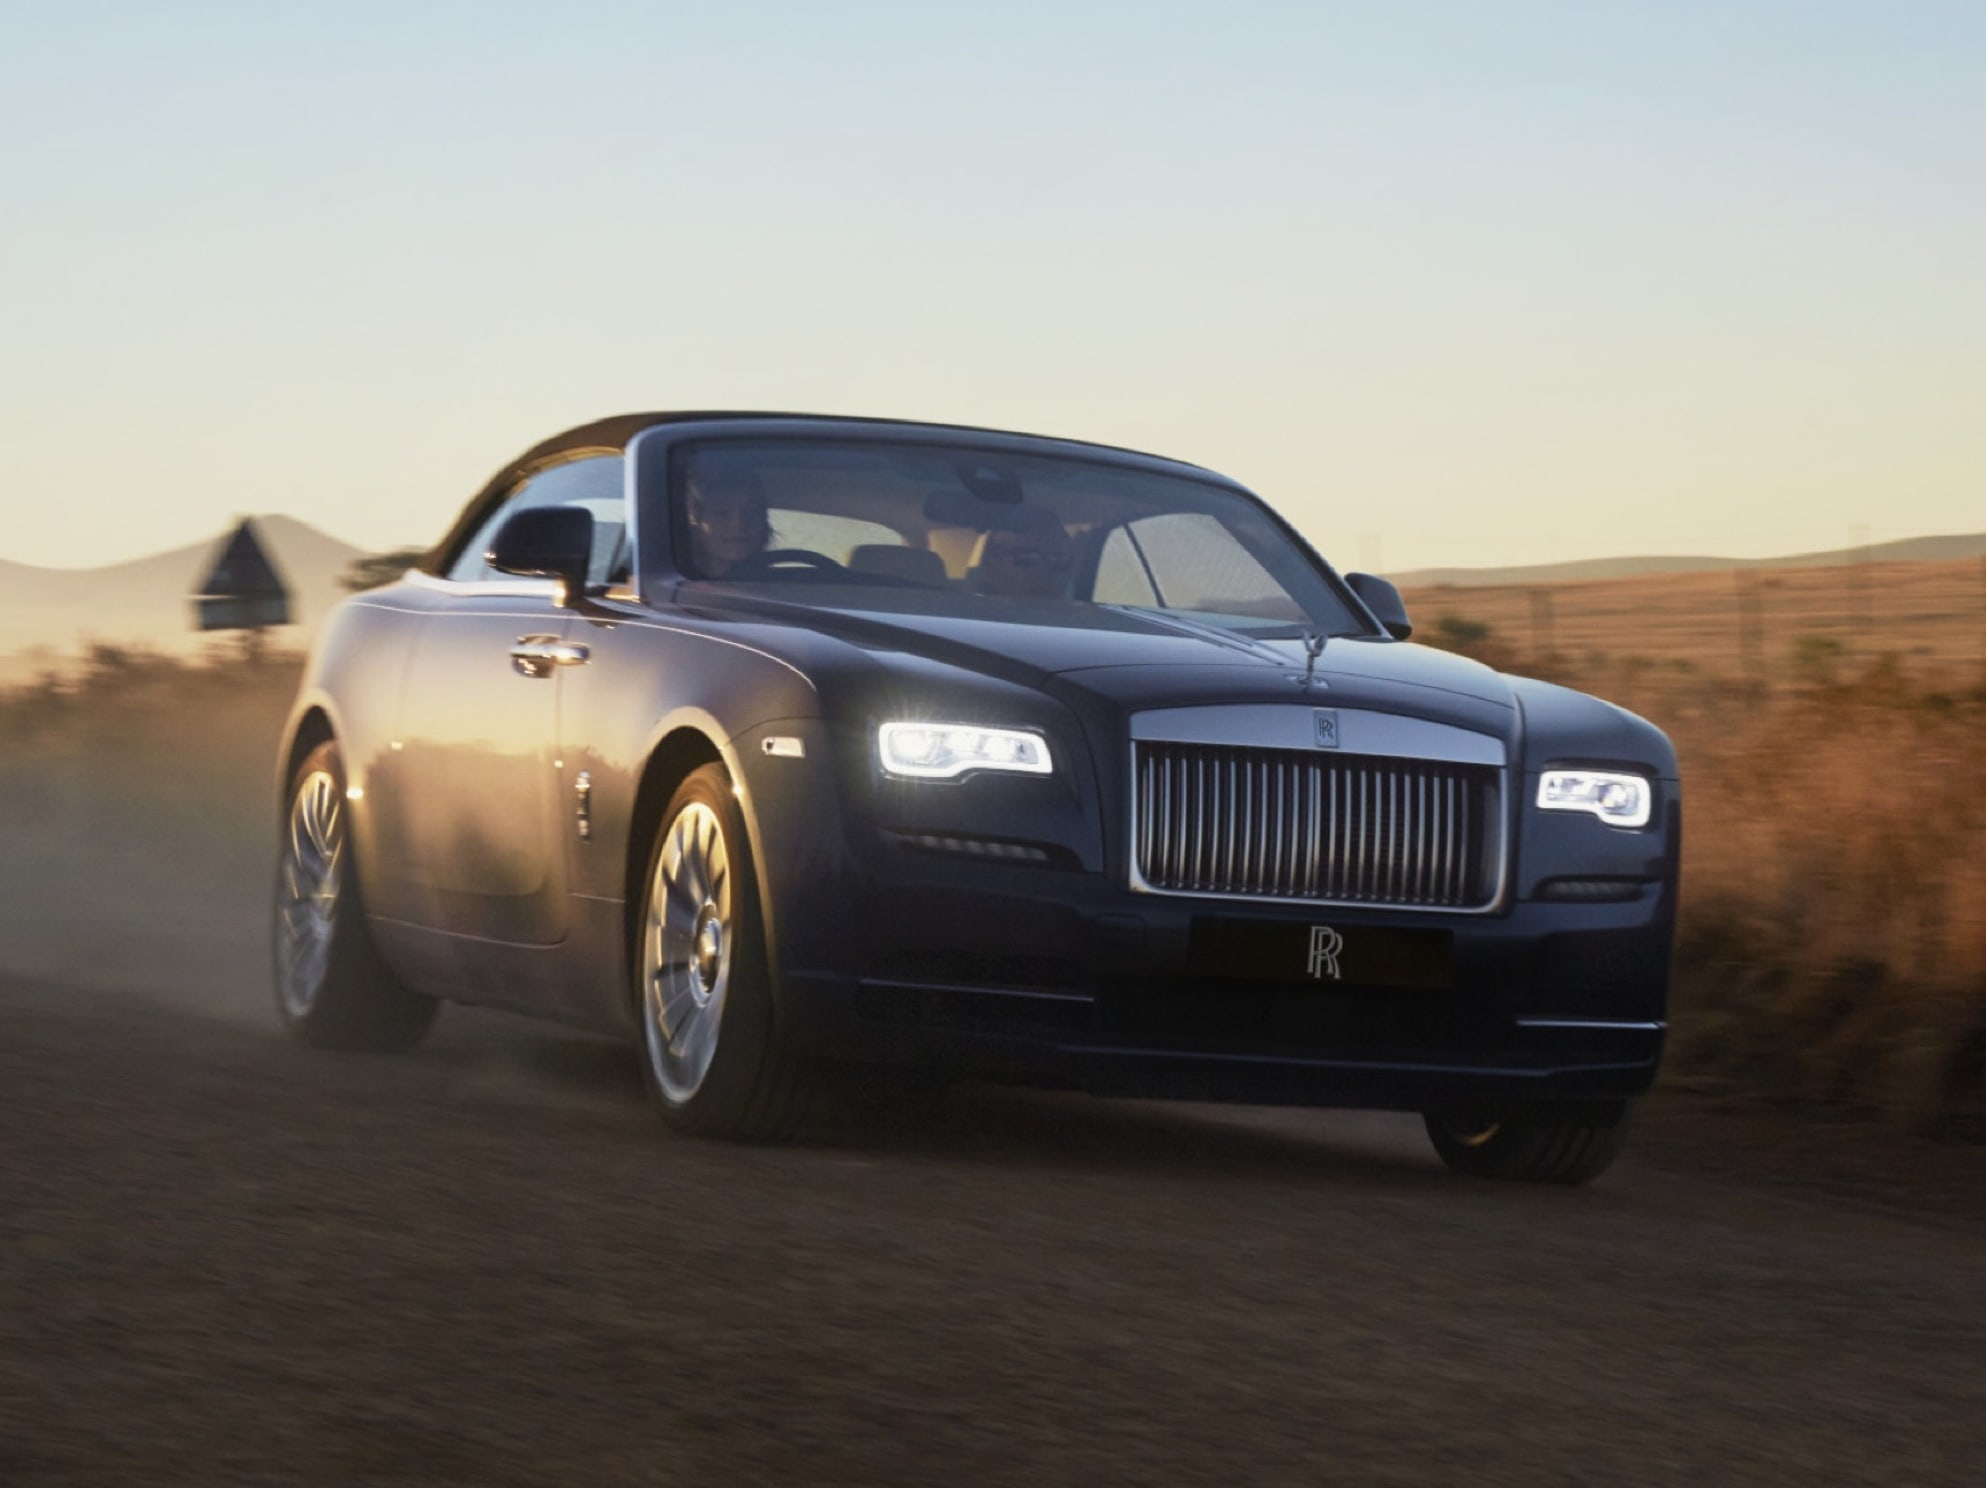 Front view of Rolls-Royce Dawn on a dirt road